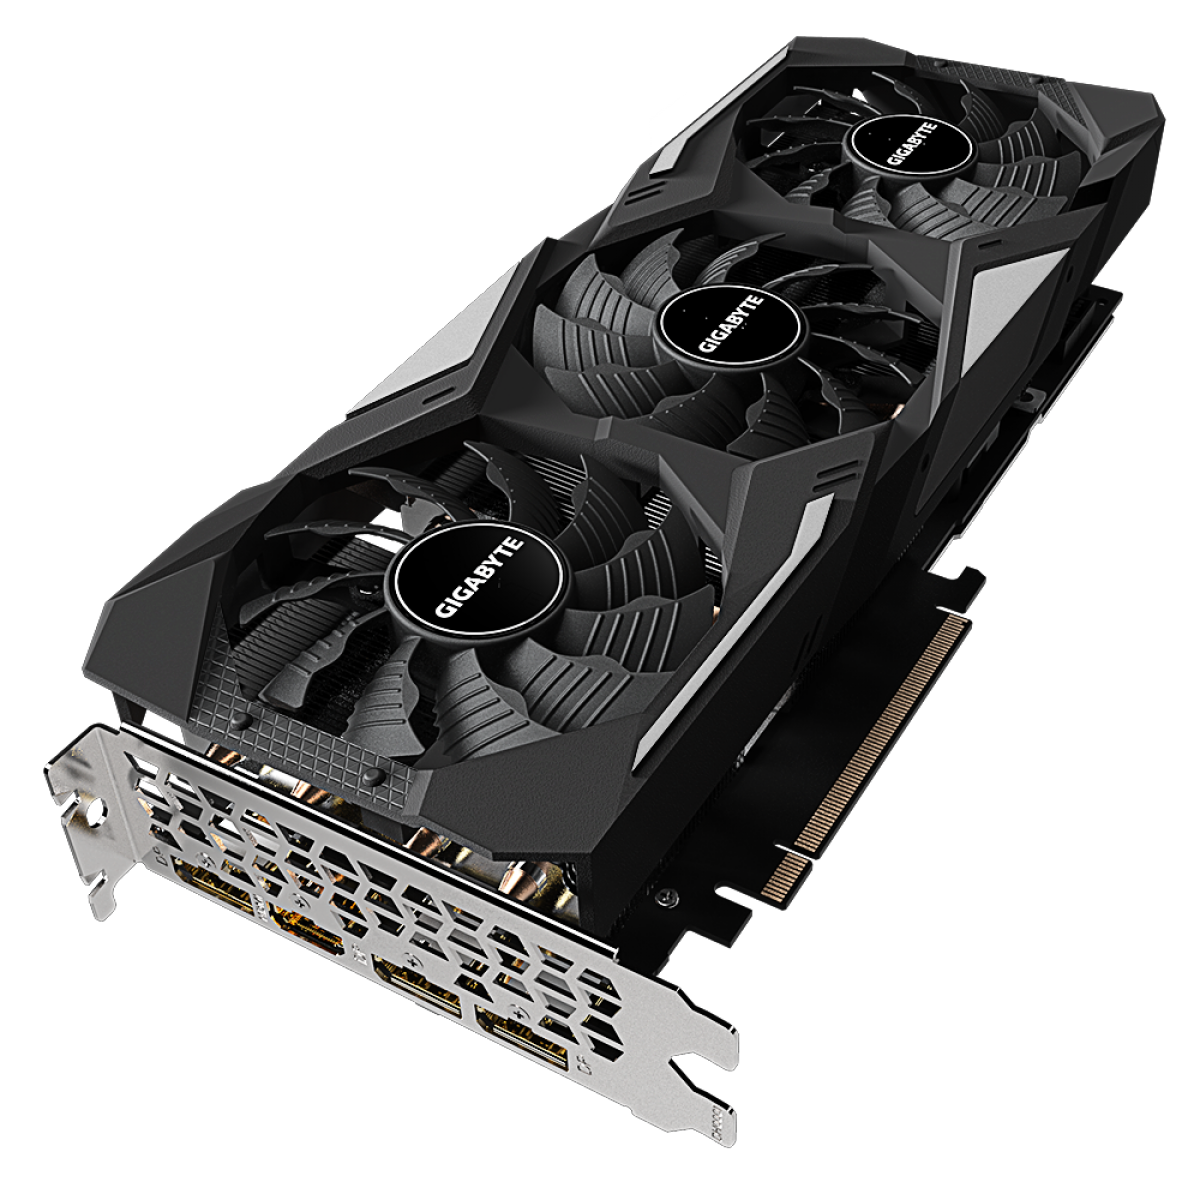 Placa de Vídeo Gigabyte GeForce RTX 2070 Super Windforce OC 3X, 8GB GDDR6, 256Bit, GV-N207SWF3OC-8GD